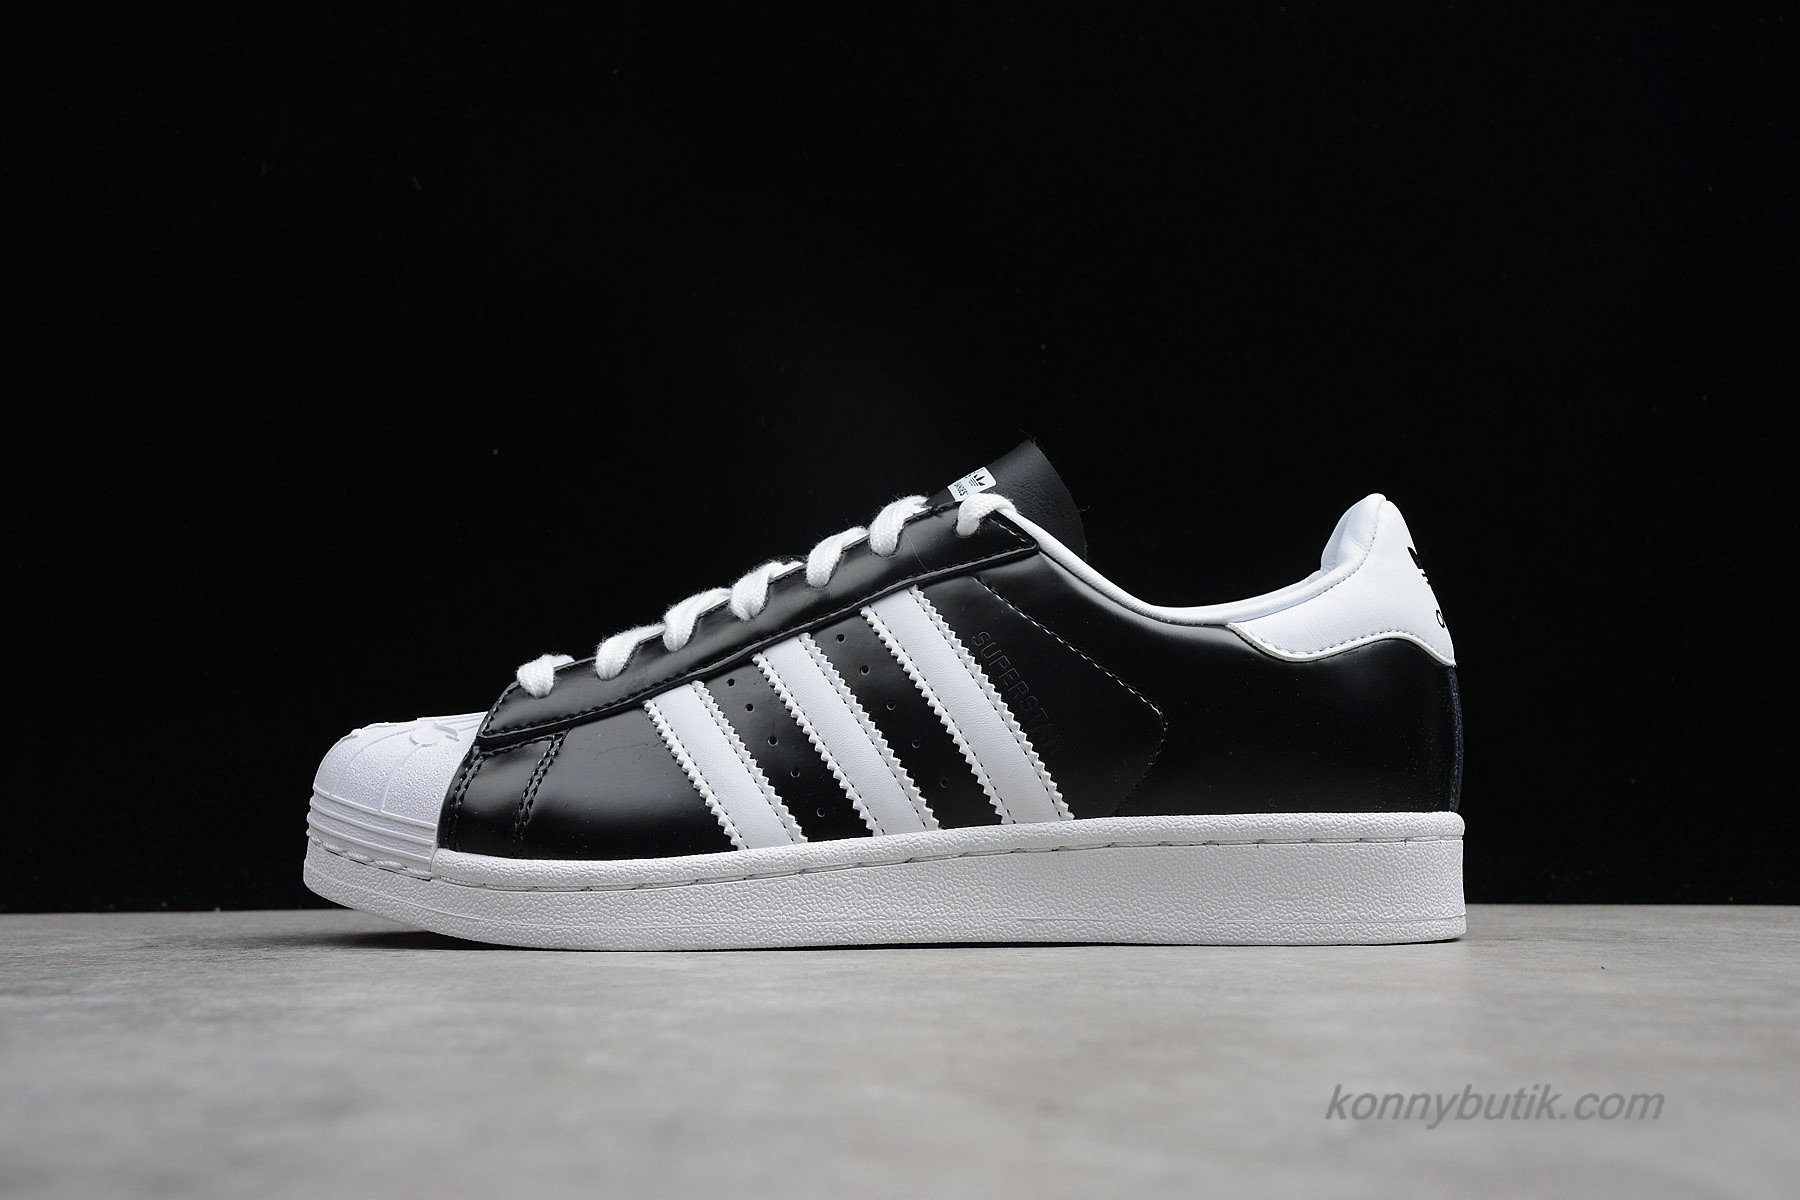 Adidas Originals Superstar Nigo Bearfoot Unisex Sko Sort / Hvid (S83386)